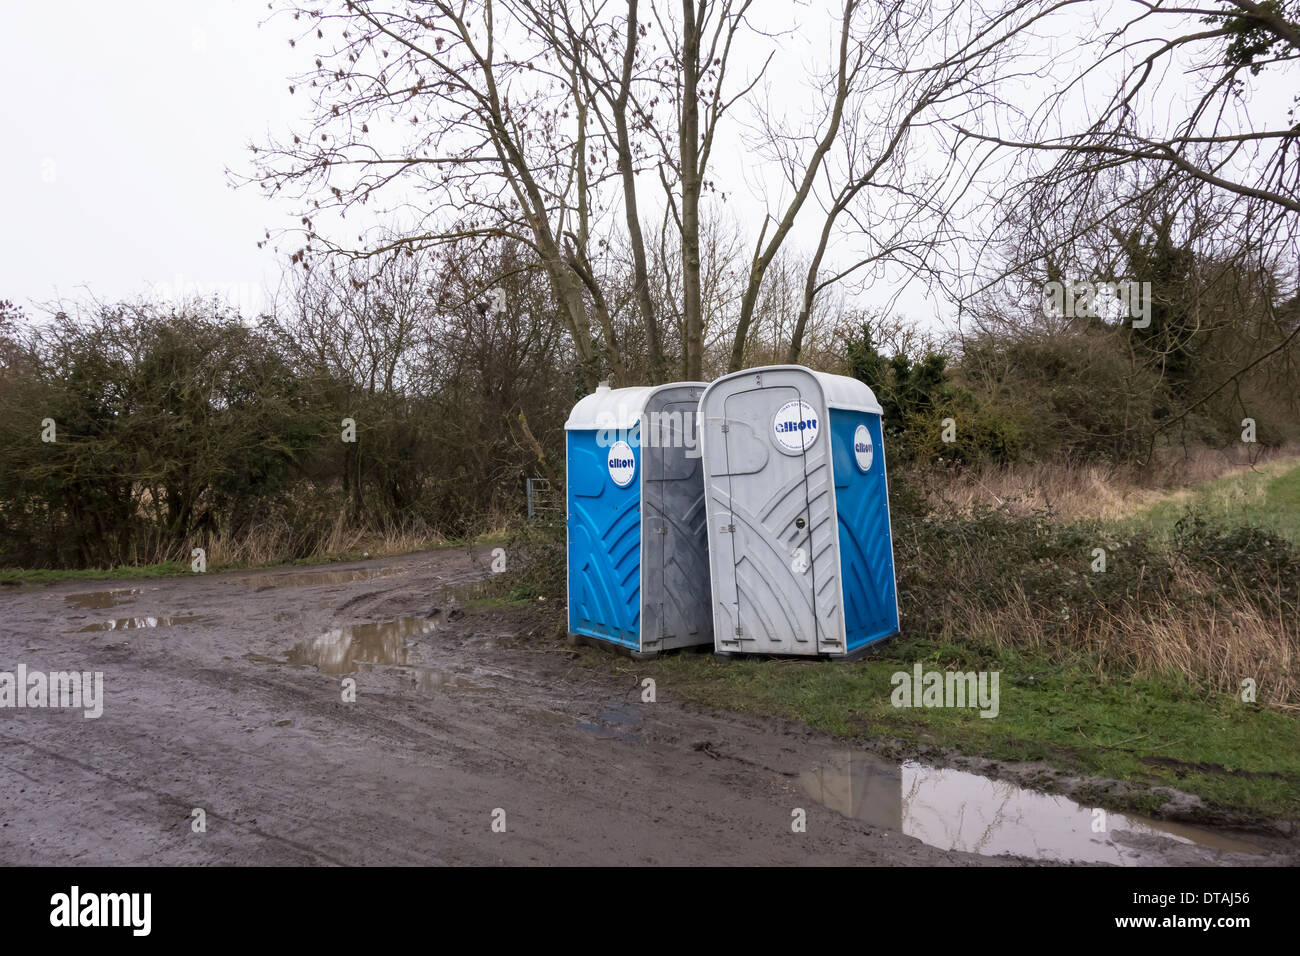 hikers-relief-portable-toilets-at-side-of-country-lane-DTAJ56.jpg